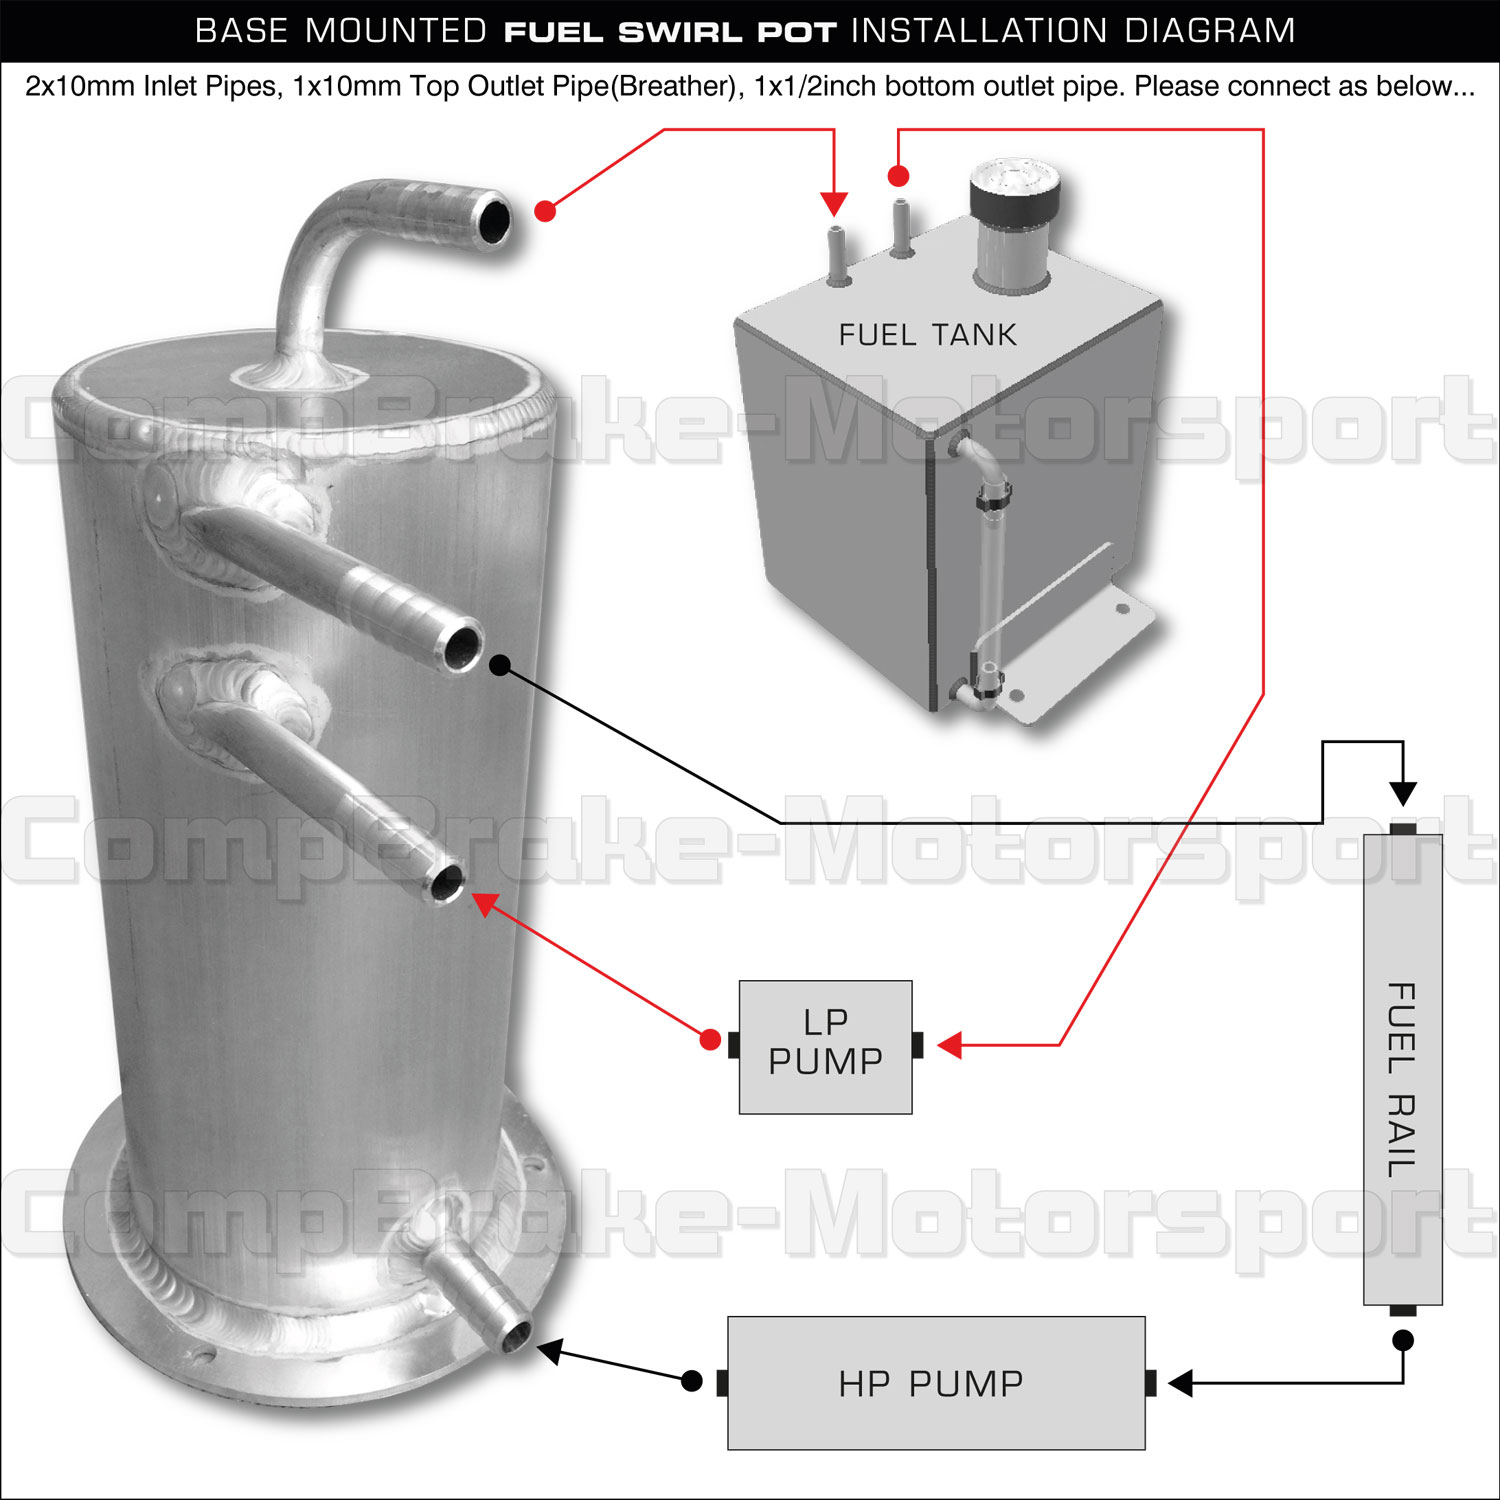 Swirl Pot Diagram on Nissan 3 0 Engine Diagram